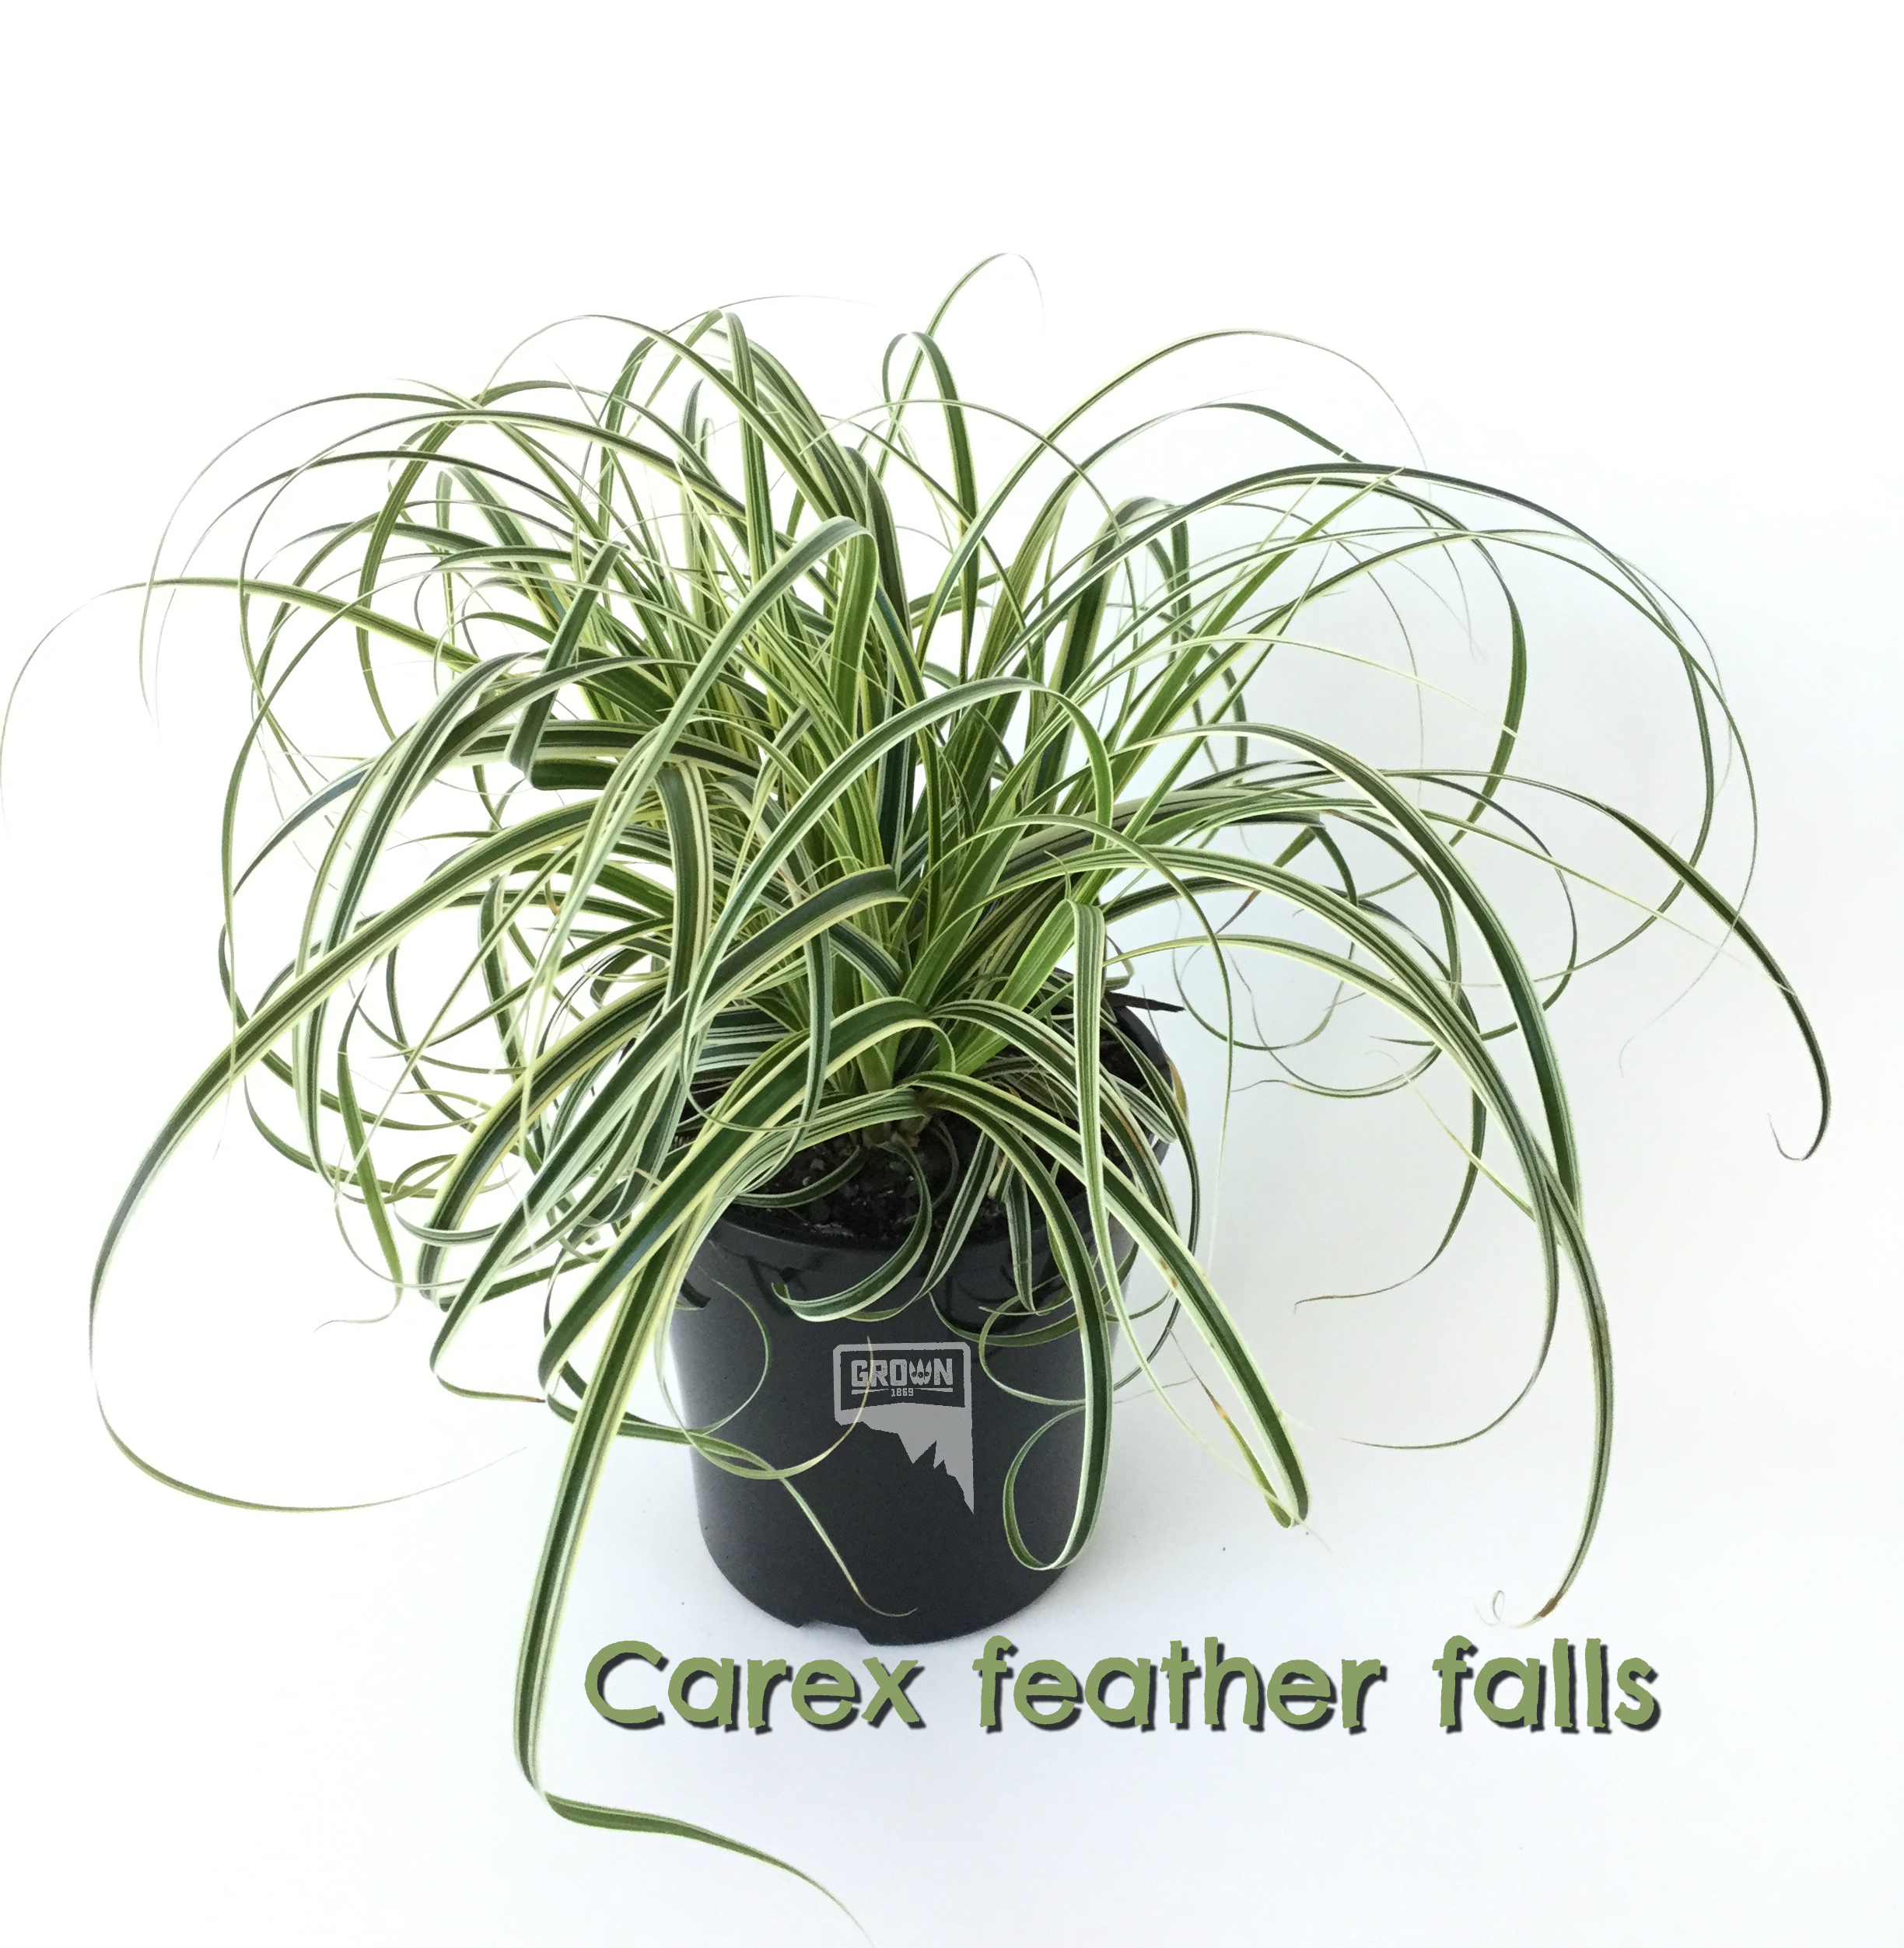 Carex feather f CropWM alls .jpg